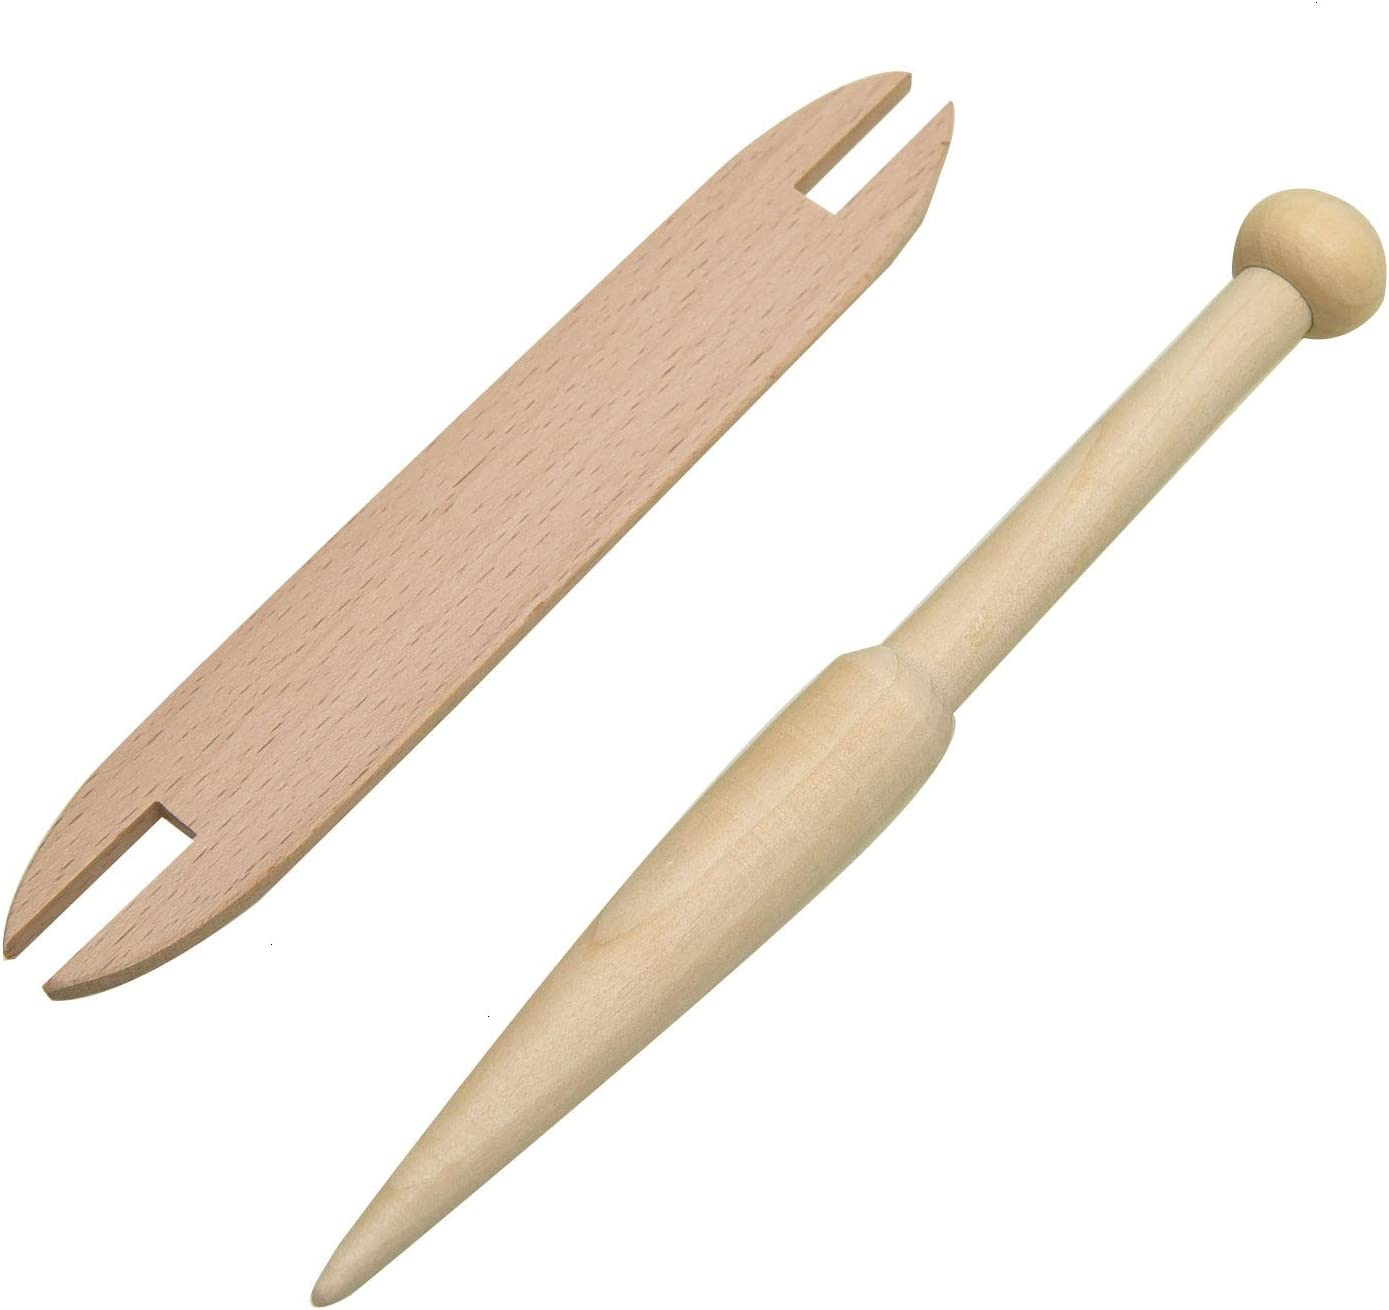 Wooden Shuttles Knitting Weaving Tool Loom Machine Accessory for DIY Crafts